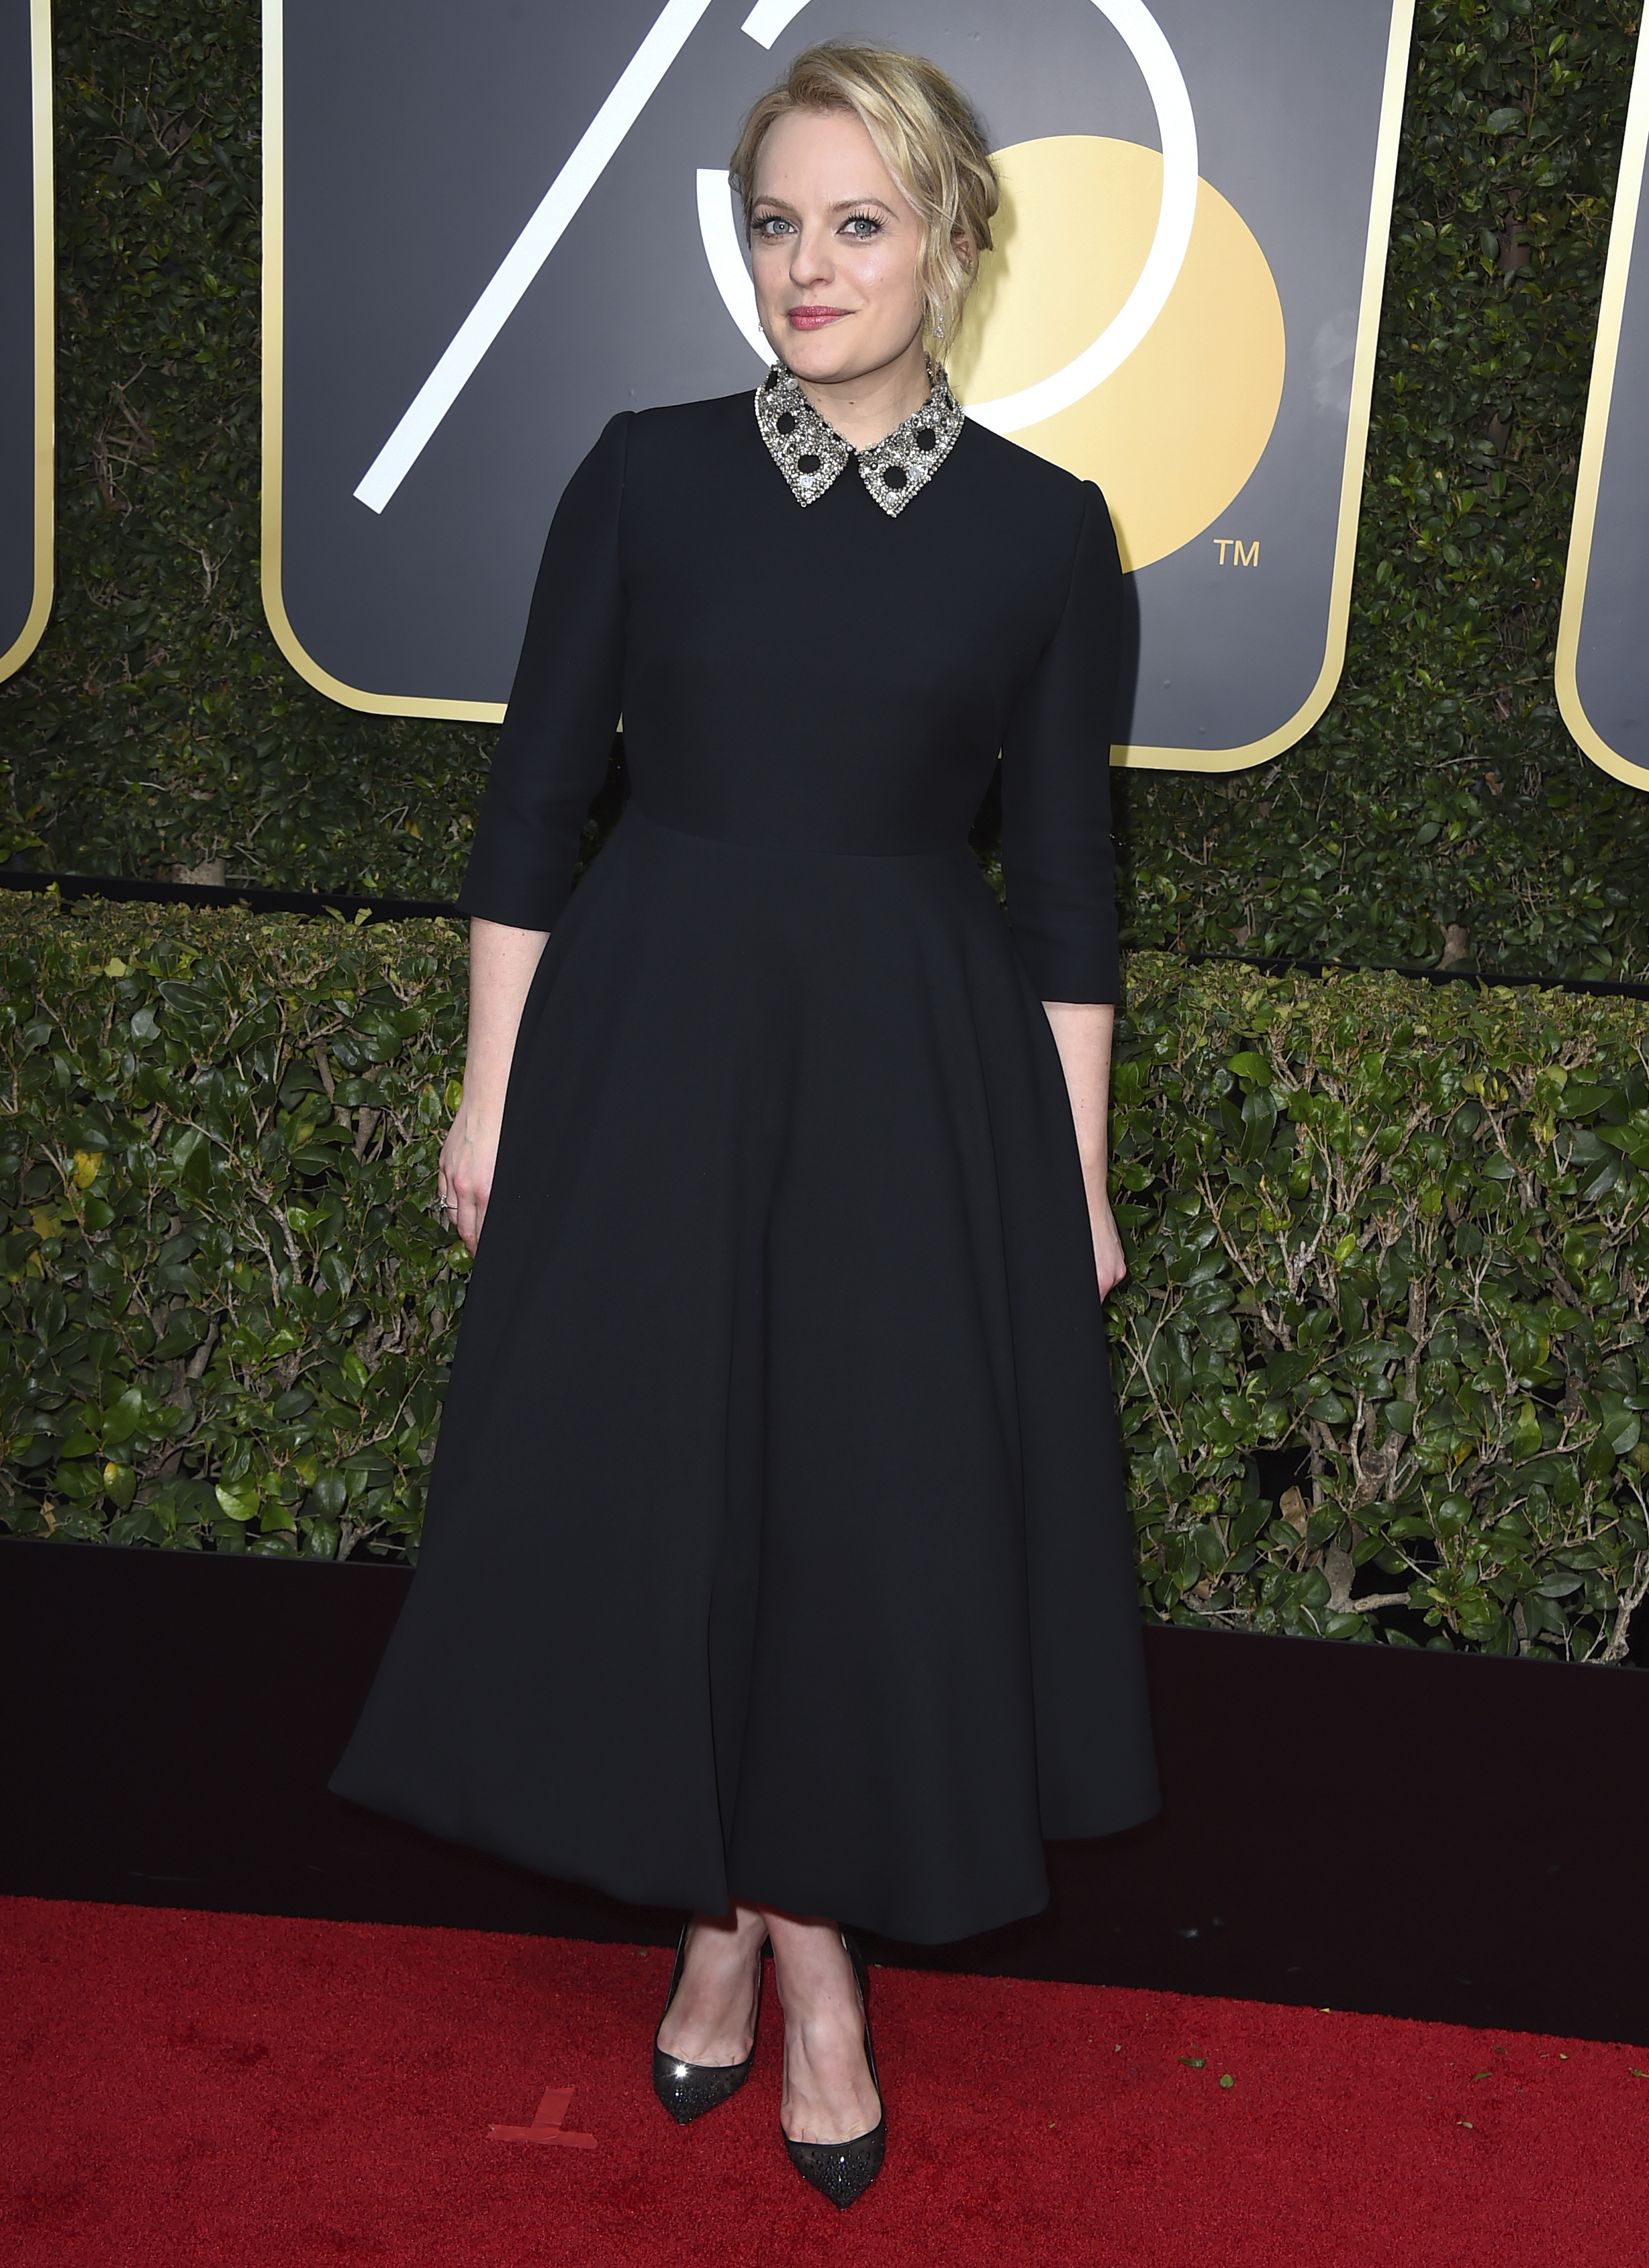 <div class='meta'><div class='origin-logo' data-origin='AP'></div><span class='caption-text' data-credit='Jordan Strauss/Invision/AP'>Elisabeth Moss arrives at the 75th annual Golden Globe Awards at the Beverly Hilton Hotel on Sunday, Jan. 7, 2018, in Beverly Hills, Calif.</span></div>